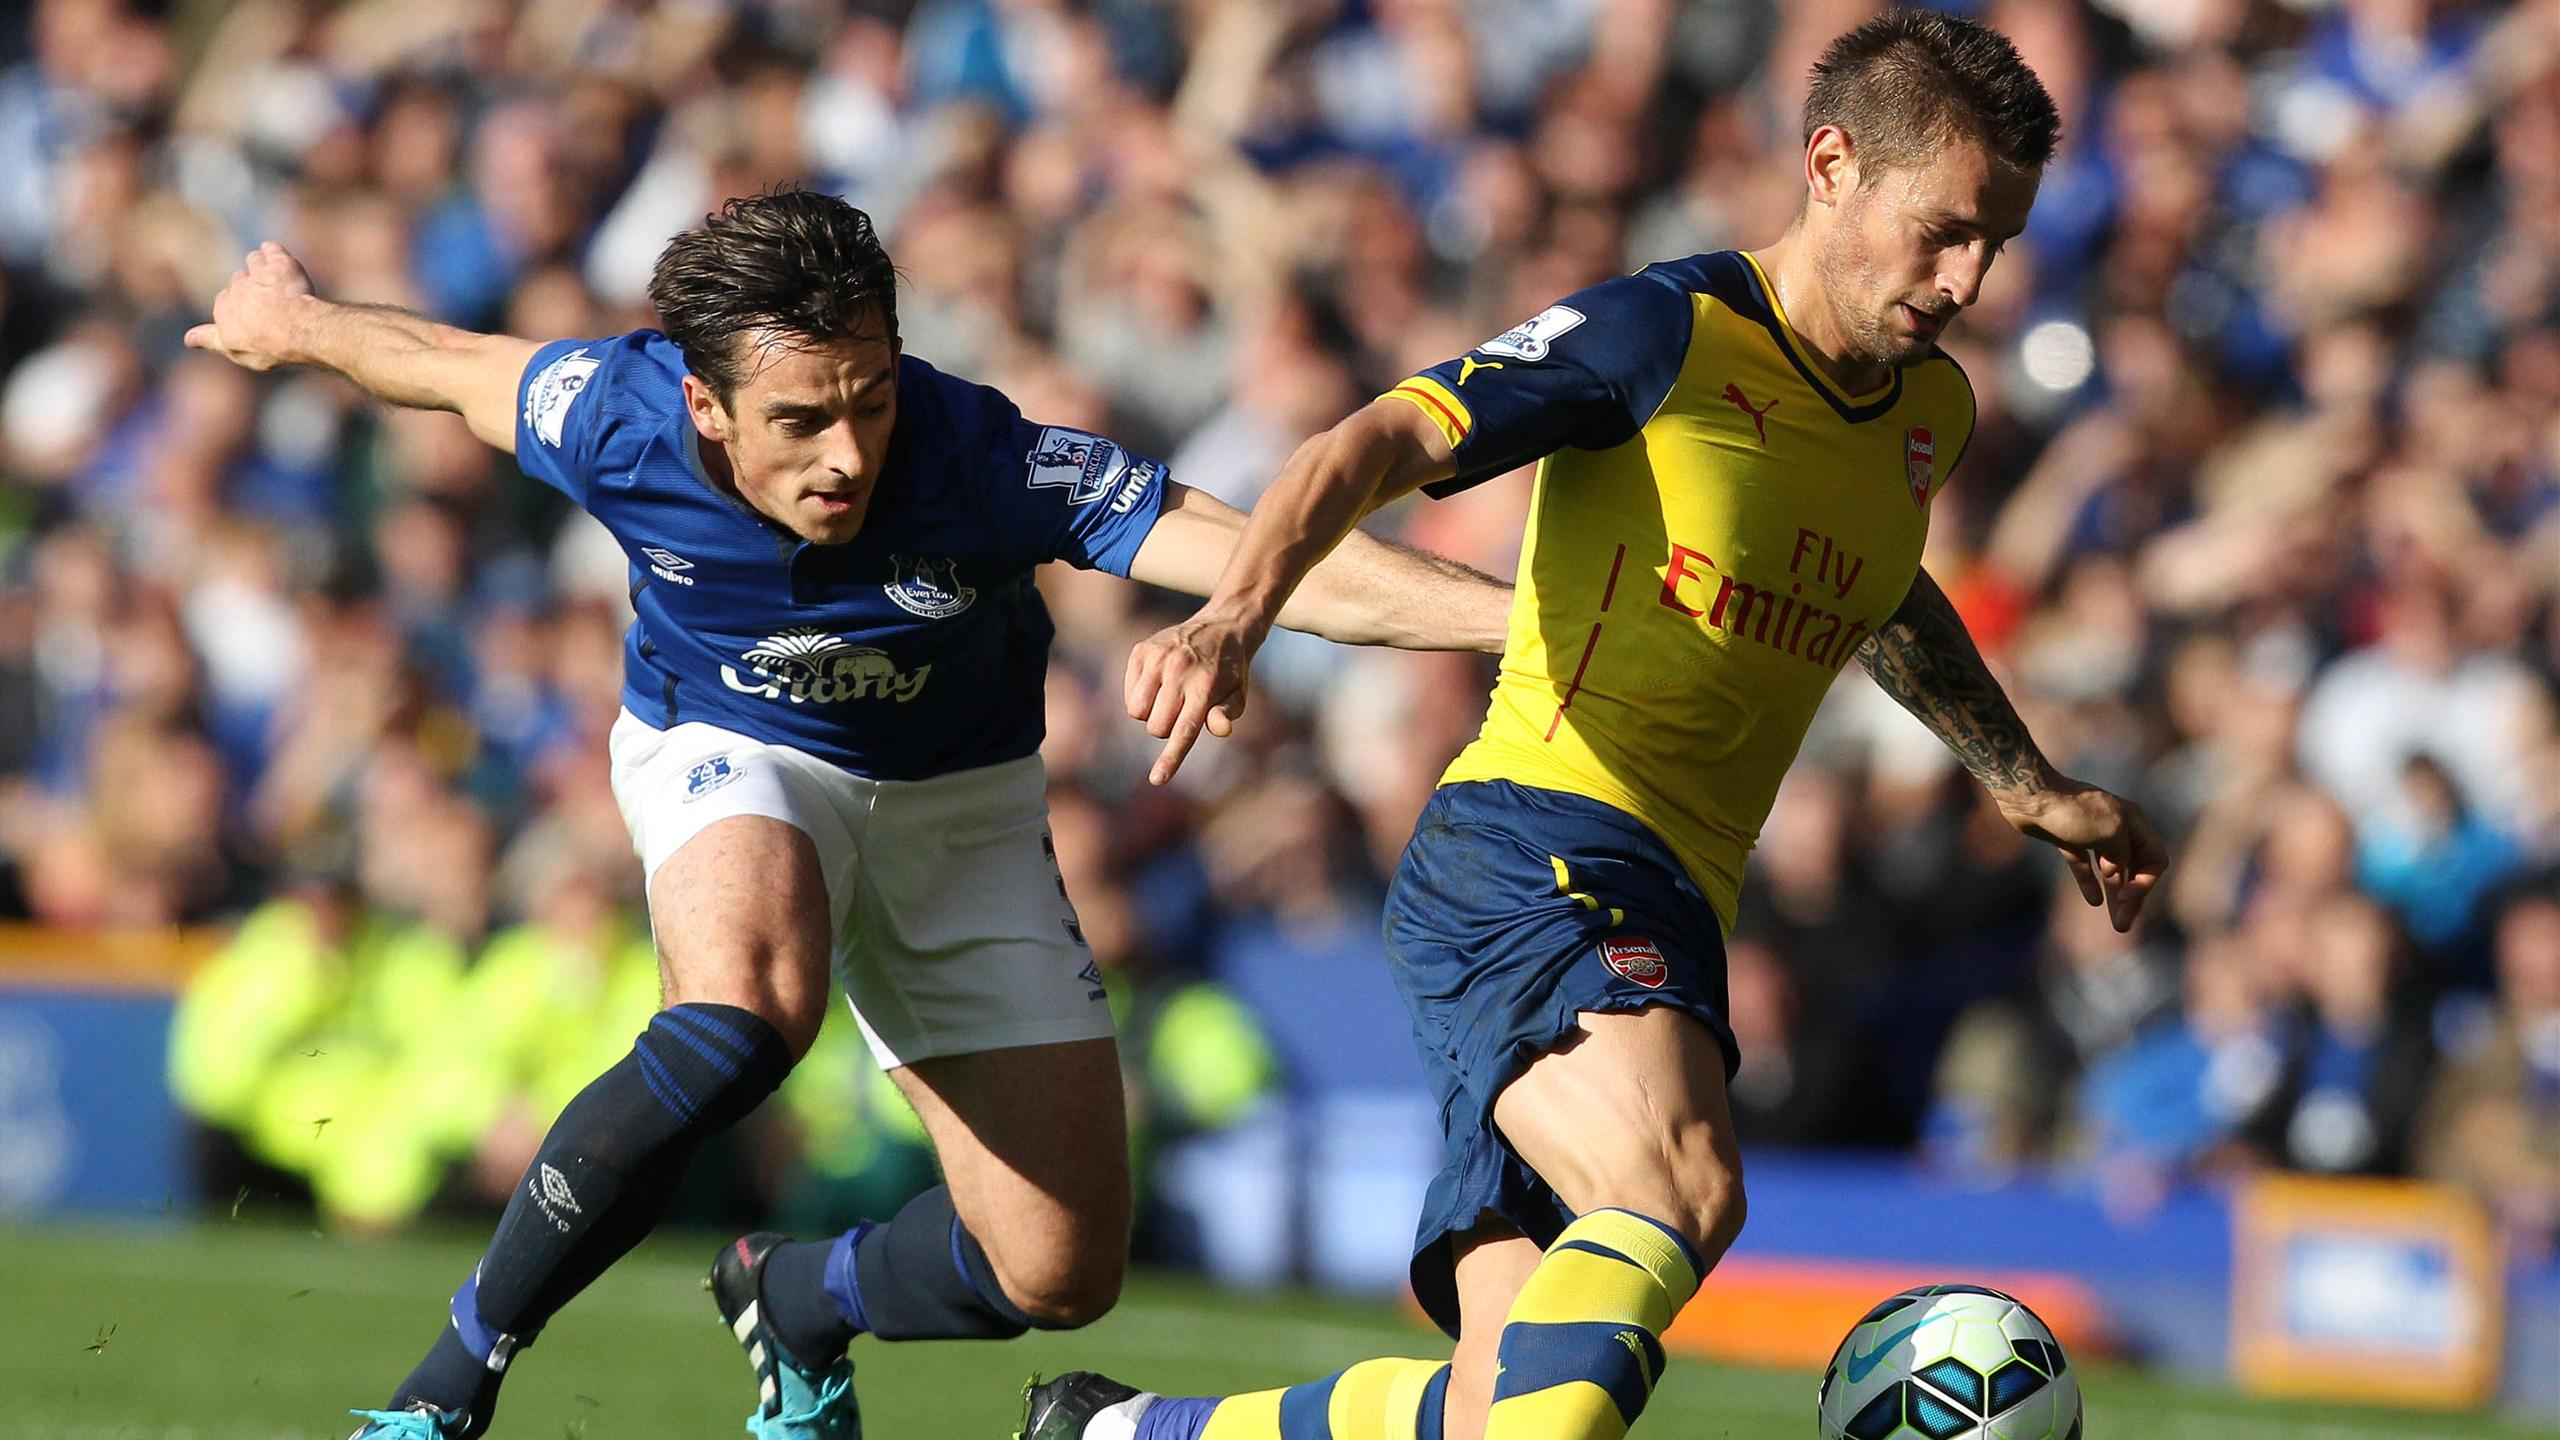 Mathieu Debuchy (Arsenal) face à Leighton Baines (Everton)